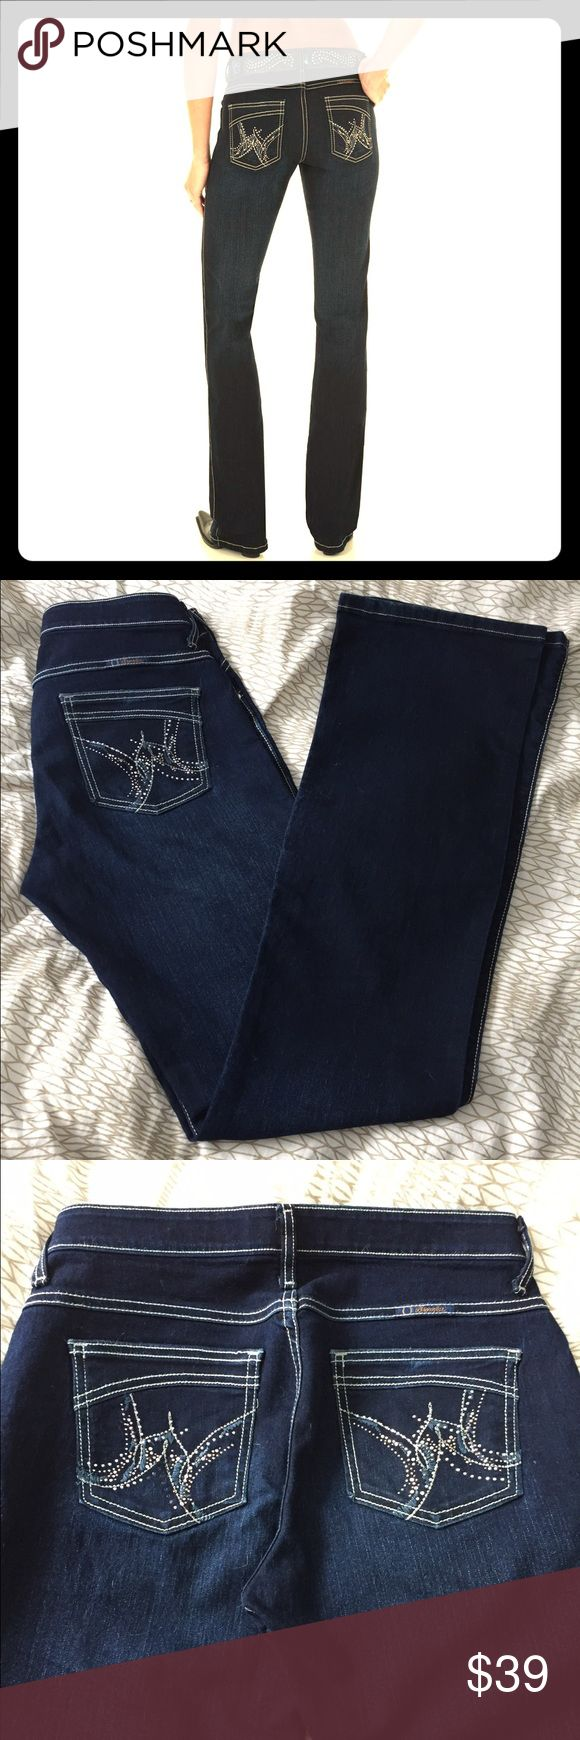 "Like new Wrangler Shiloh Rodeo Sparkle jeans! Calling all tall and leggy ladies... these jeans are for you! These have a 38"" inseam which is perfect if you're tall and/or love heels! These have a no-gap waistband so no worries of indecent exposure when you sit down! Dark rinse denim. These look really classy when worn! Who doesn't love a little cowgirl style now and then. Bootcut style so you can also wear your favorite heels or boots under.  Nearly new condition and from a smoke-free Home…"